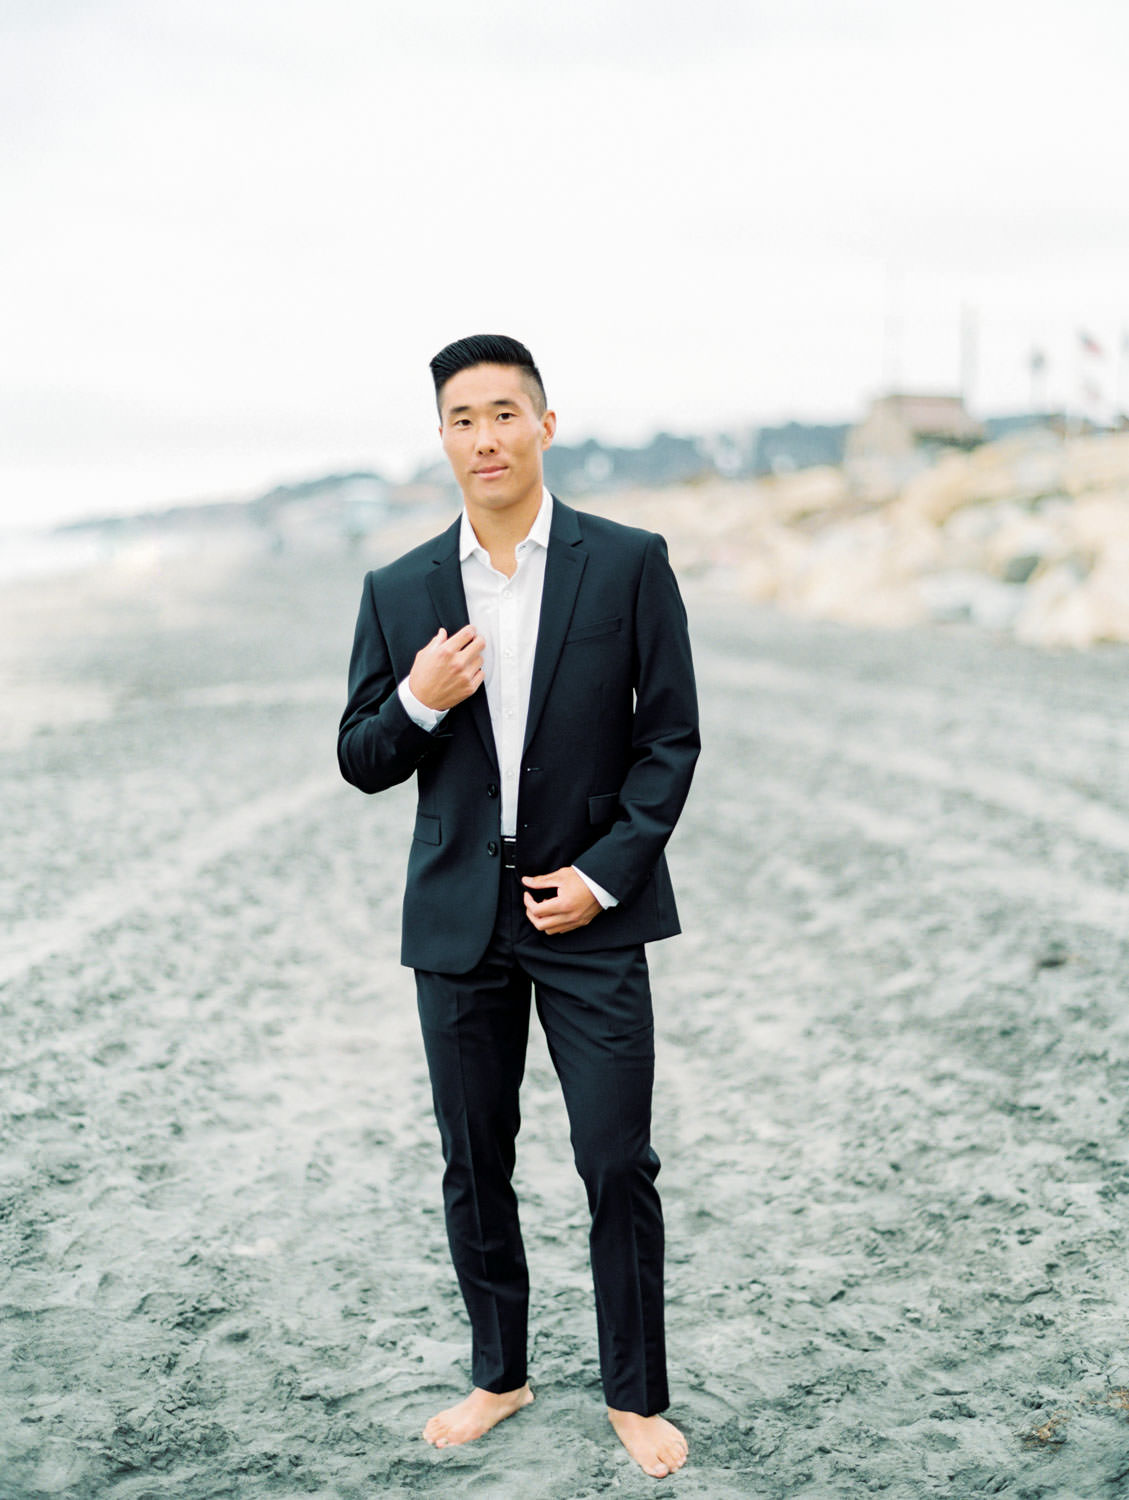 Groom in a black suit with no tie and no shoes on the beach. Torrey Pines beach photos on film by Cavin Elizabeth Photography.